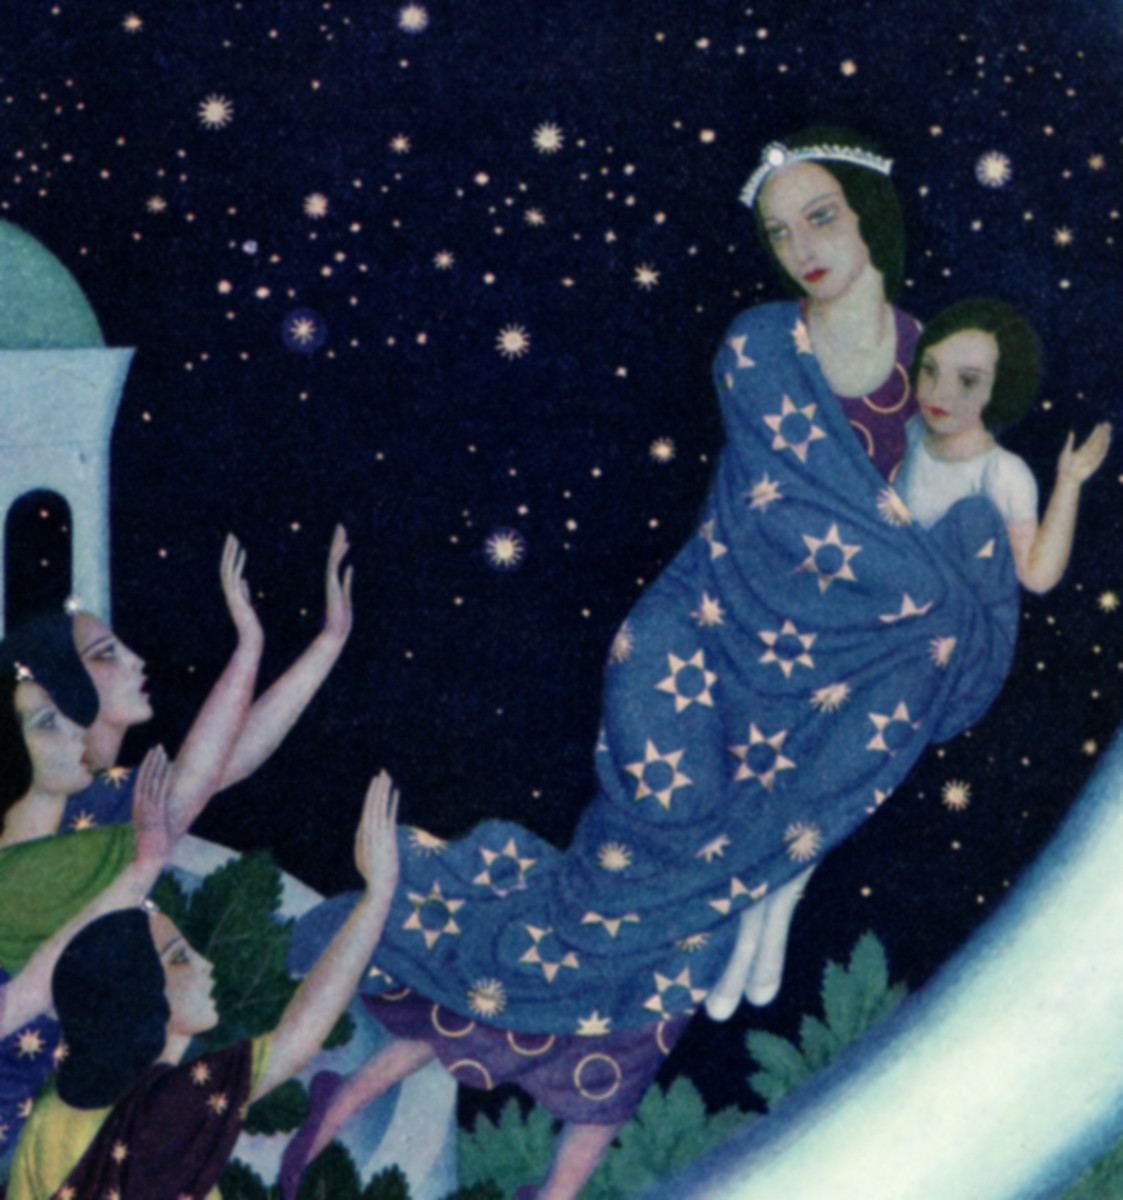 "Here we show a portion of '""Good-bye, Astrella! Good-bye, Perdita!"" they called' - it is from the suite by Edmund Dulac published in ""The Daughters of the Stars"" (1939)."